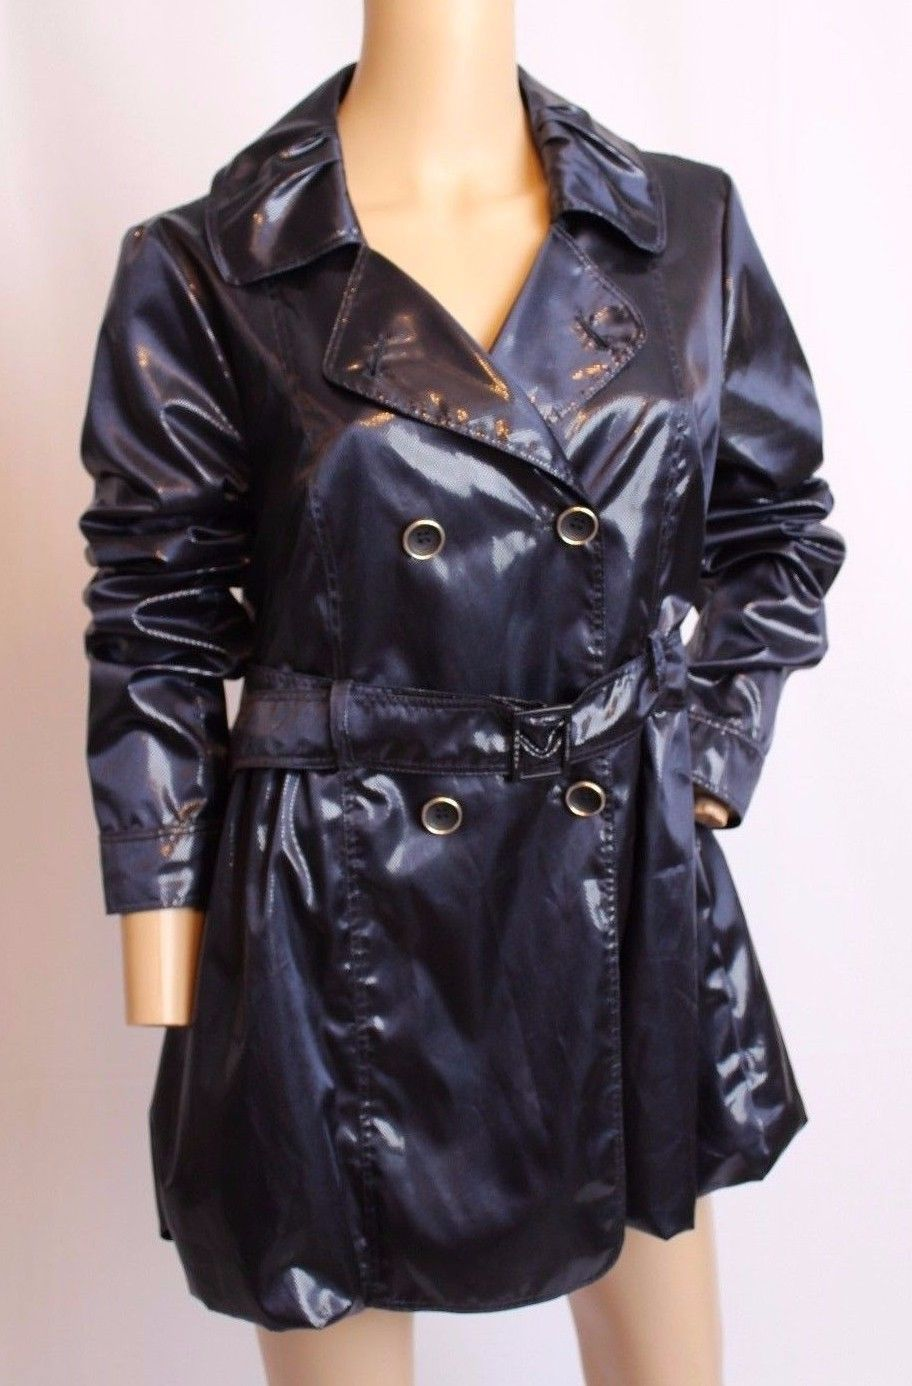 Armani Collezioni Italy Navy Blue Shiny Dots Bubble Hem TRench Coat Jacket 6